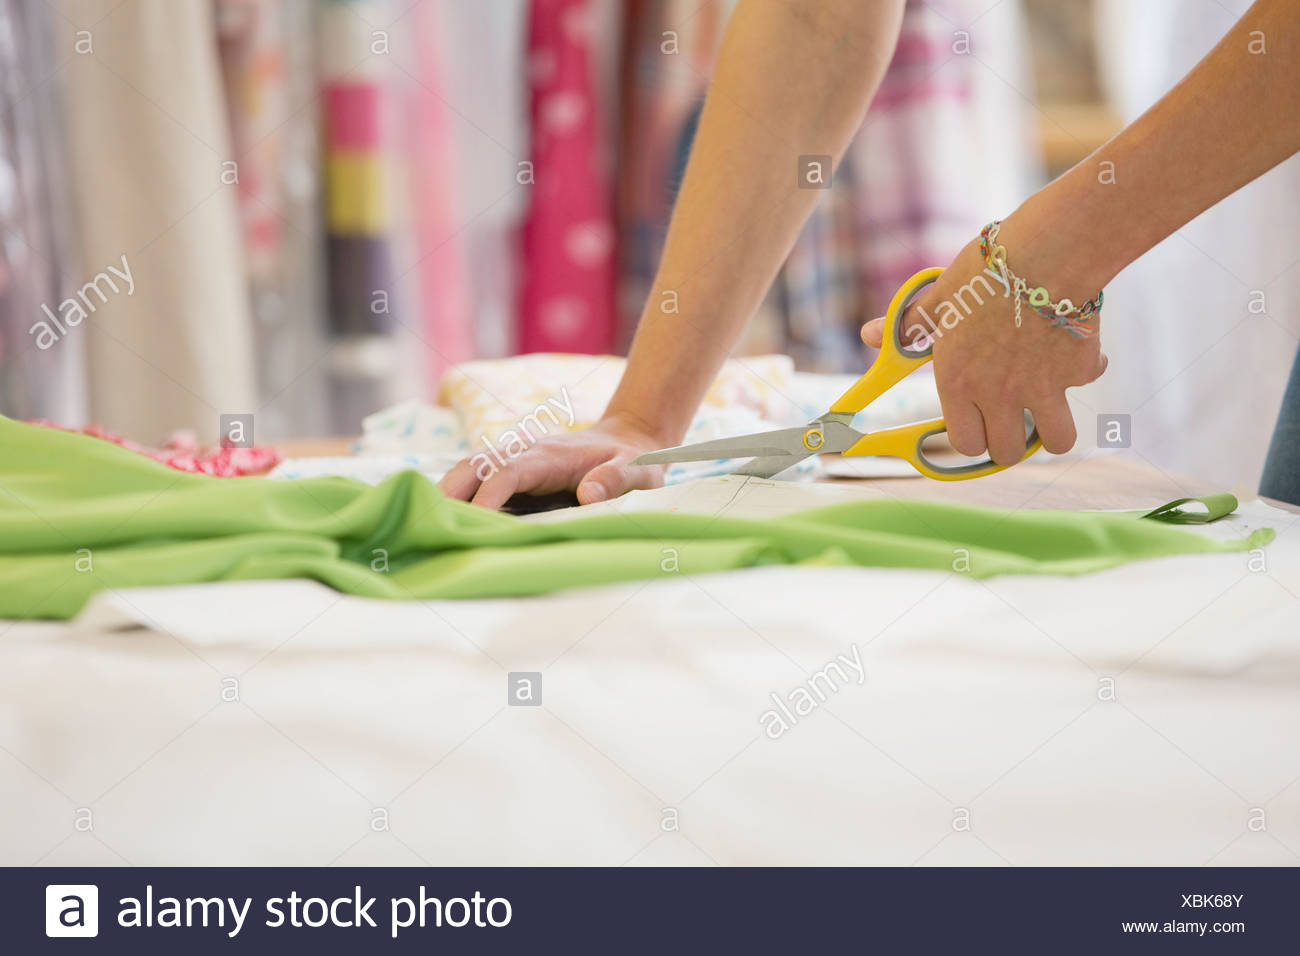 Close Up Of Fashion Designer Cutting Out Pattern From Fabric In Studio - Stock Image